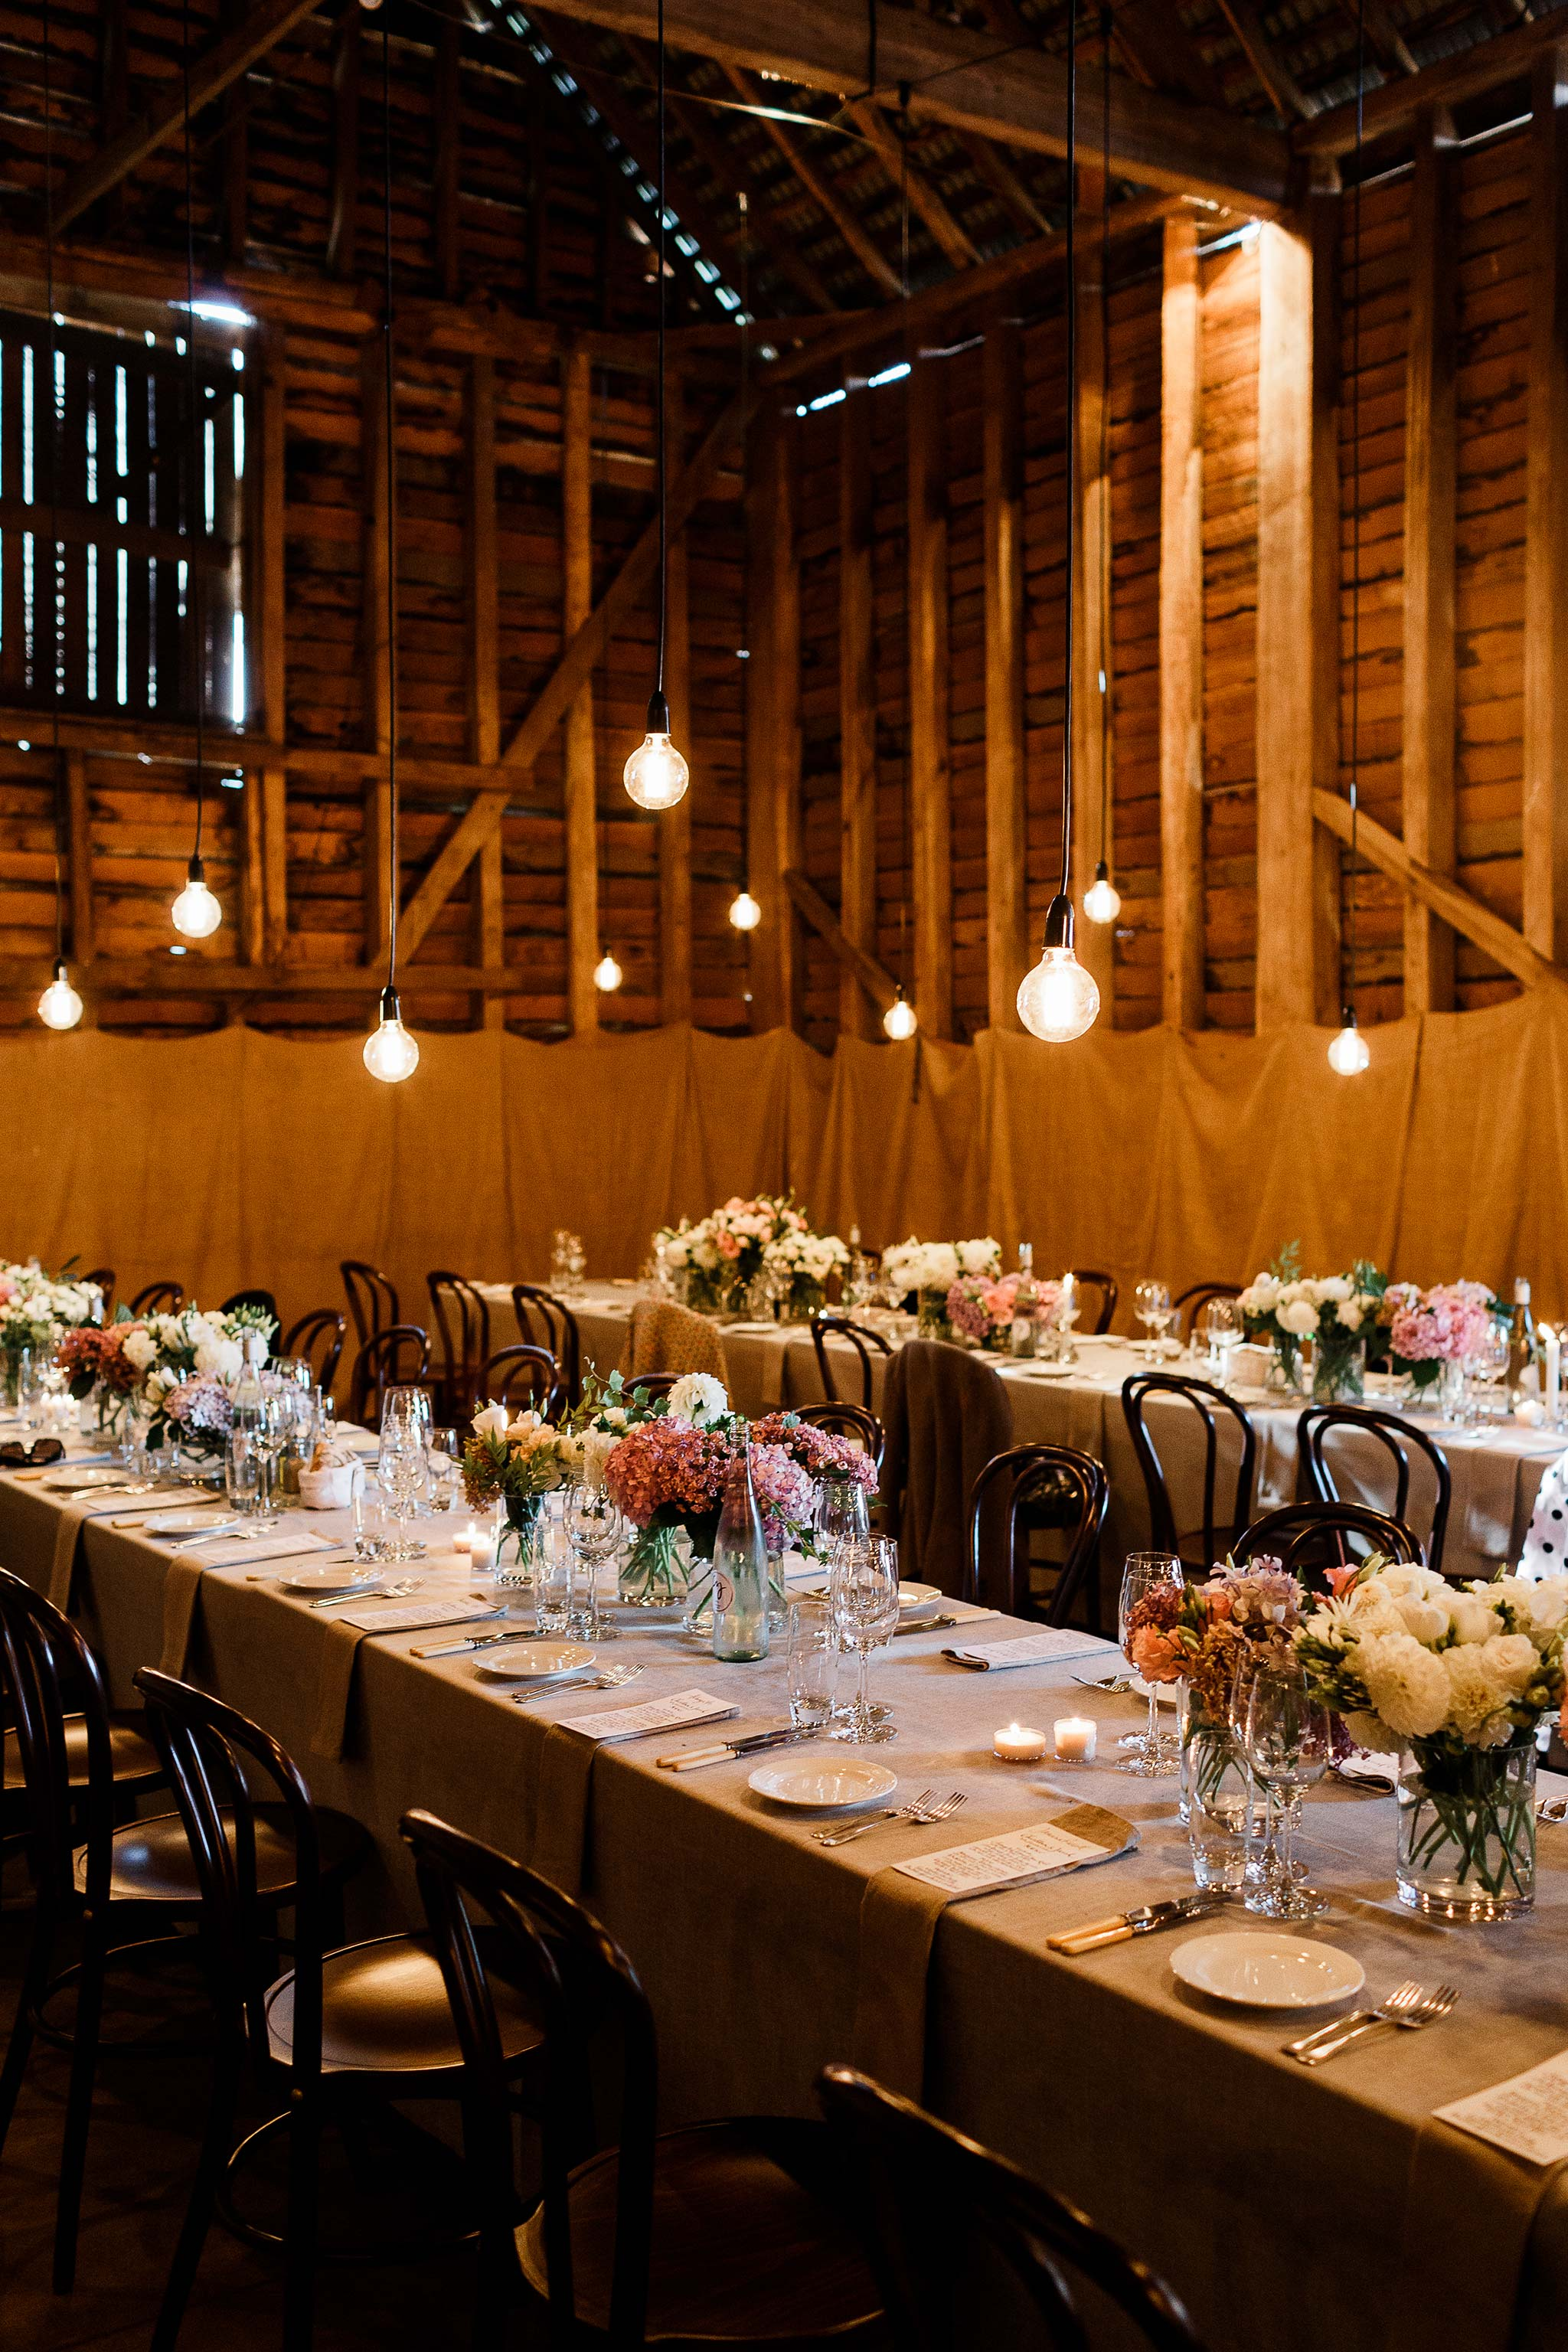 Launceston-Brickendon-barn-Wedding-Photographer-reception-set-up